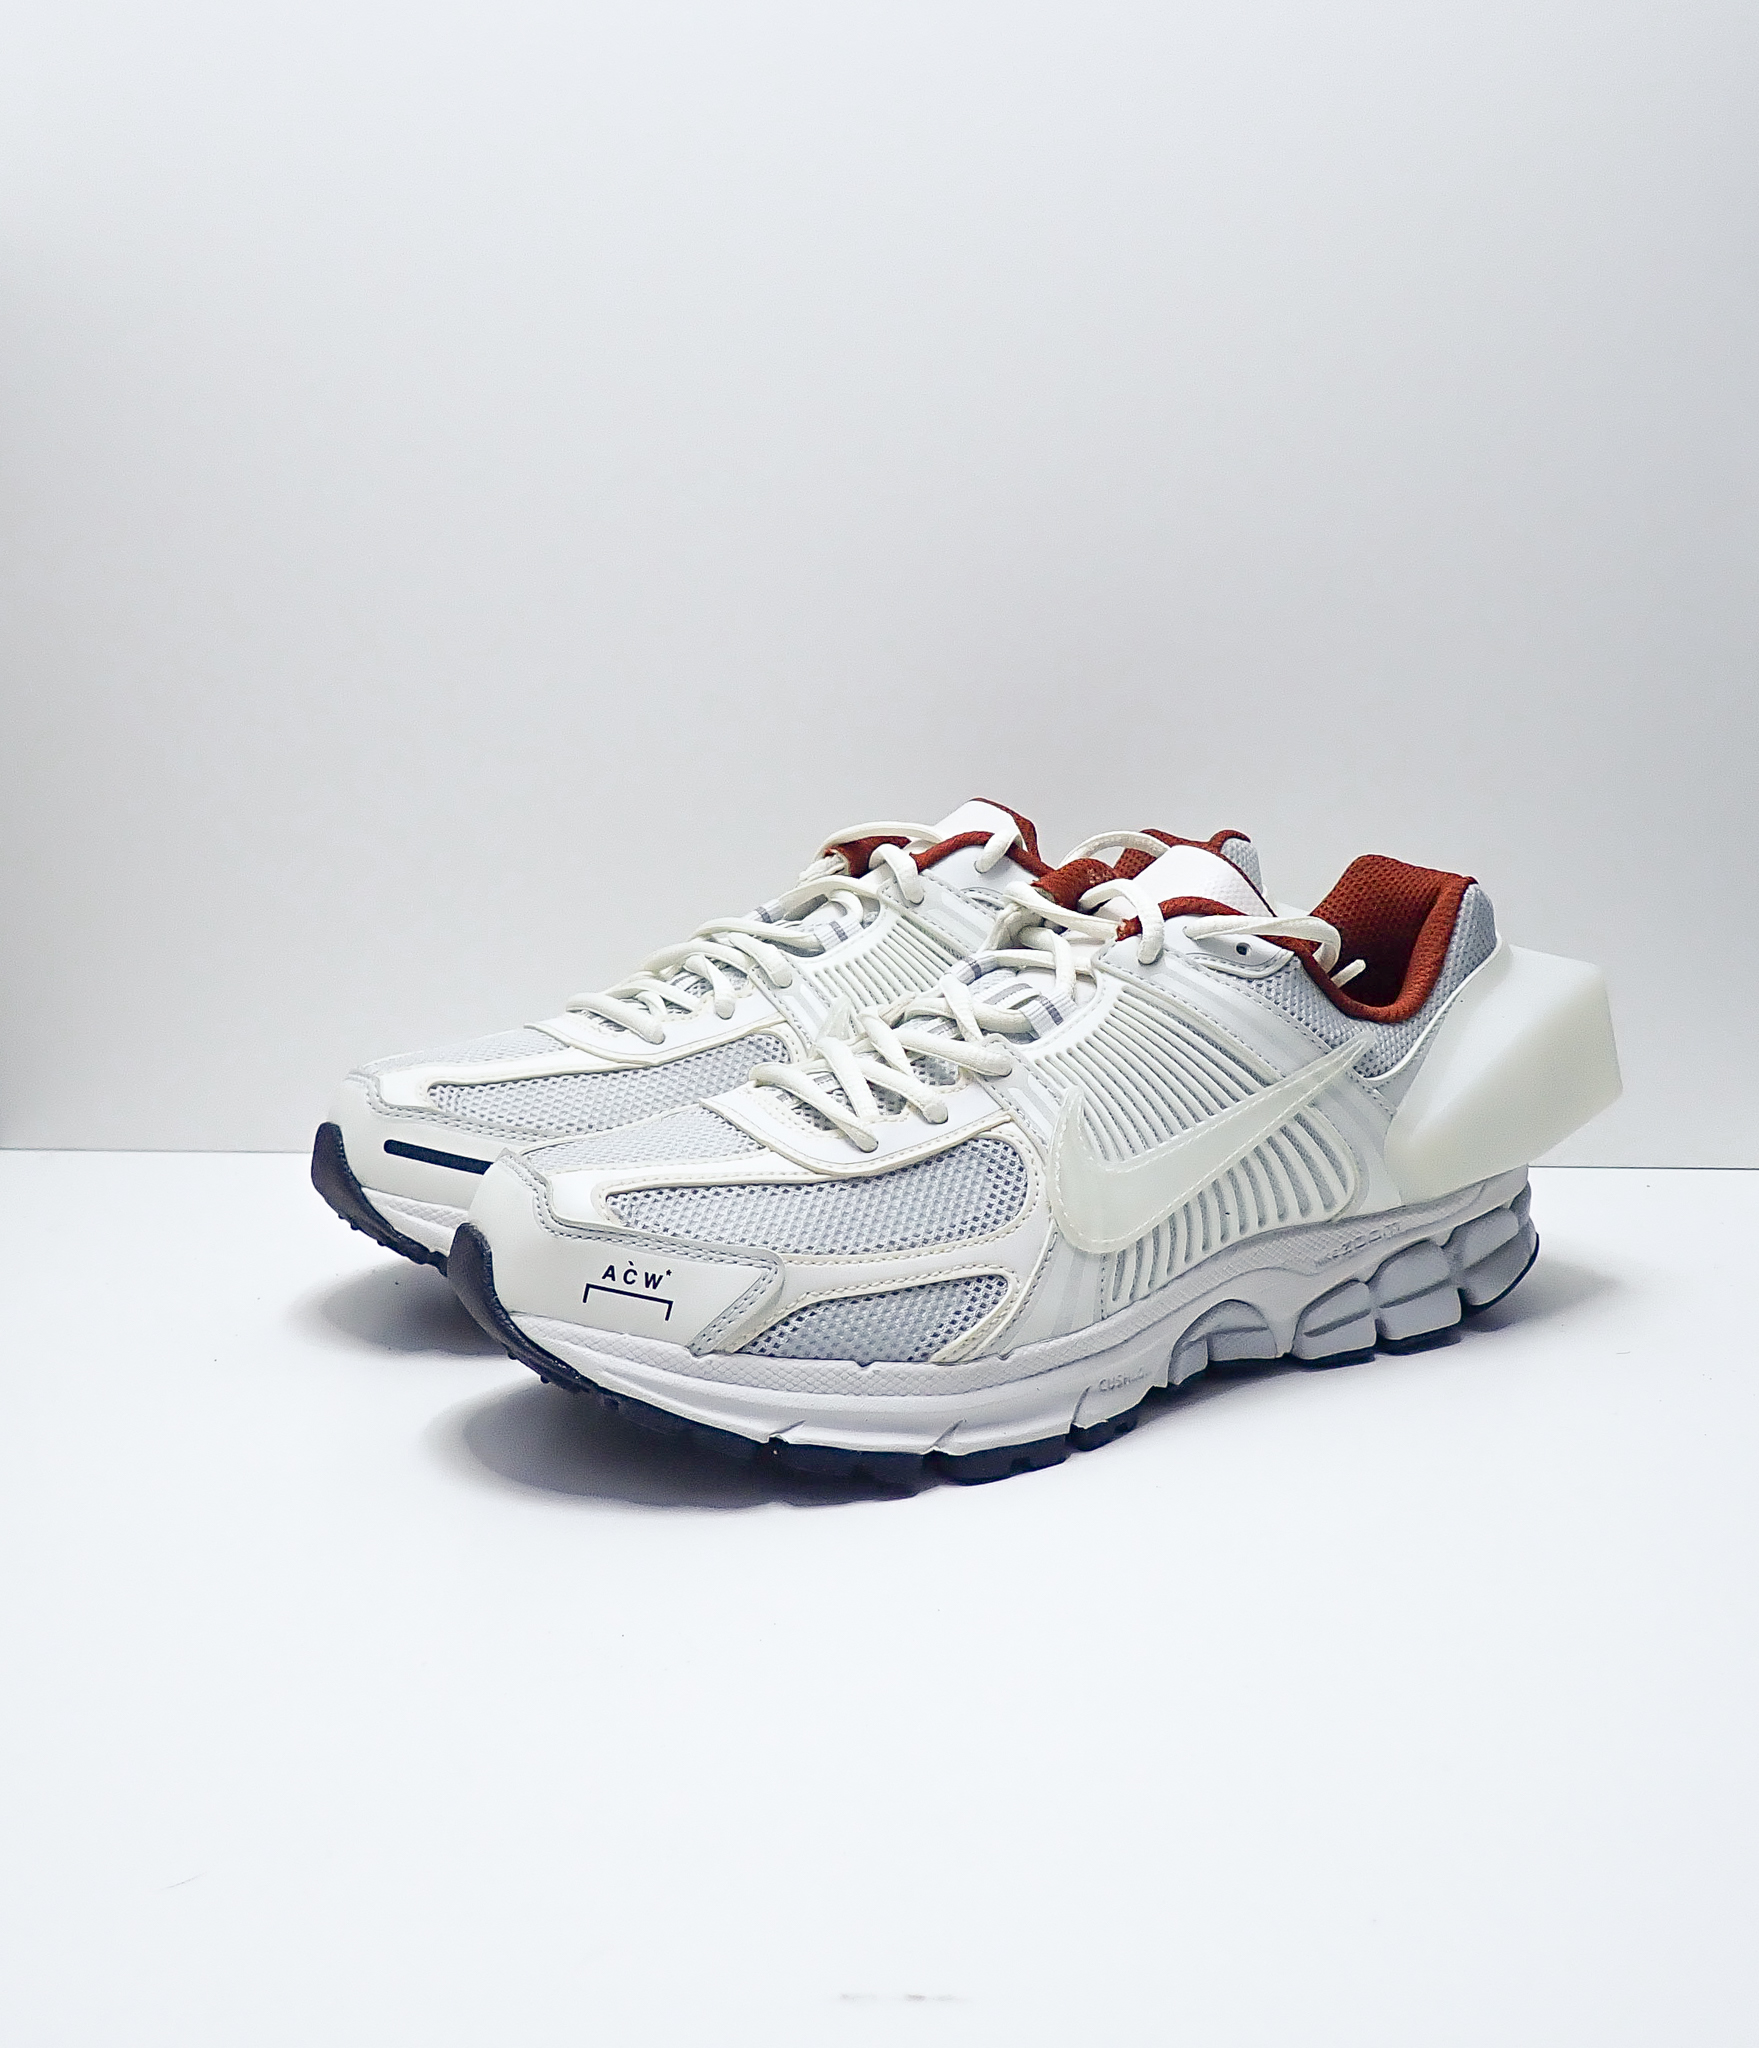 Nike Zoom Vomero 5 A Cold Wall Sail